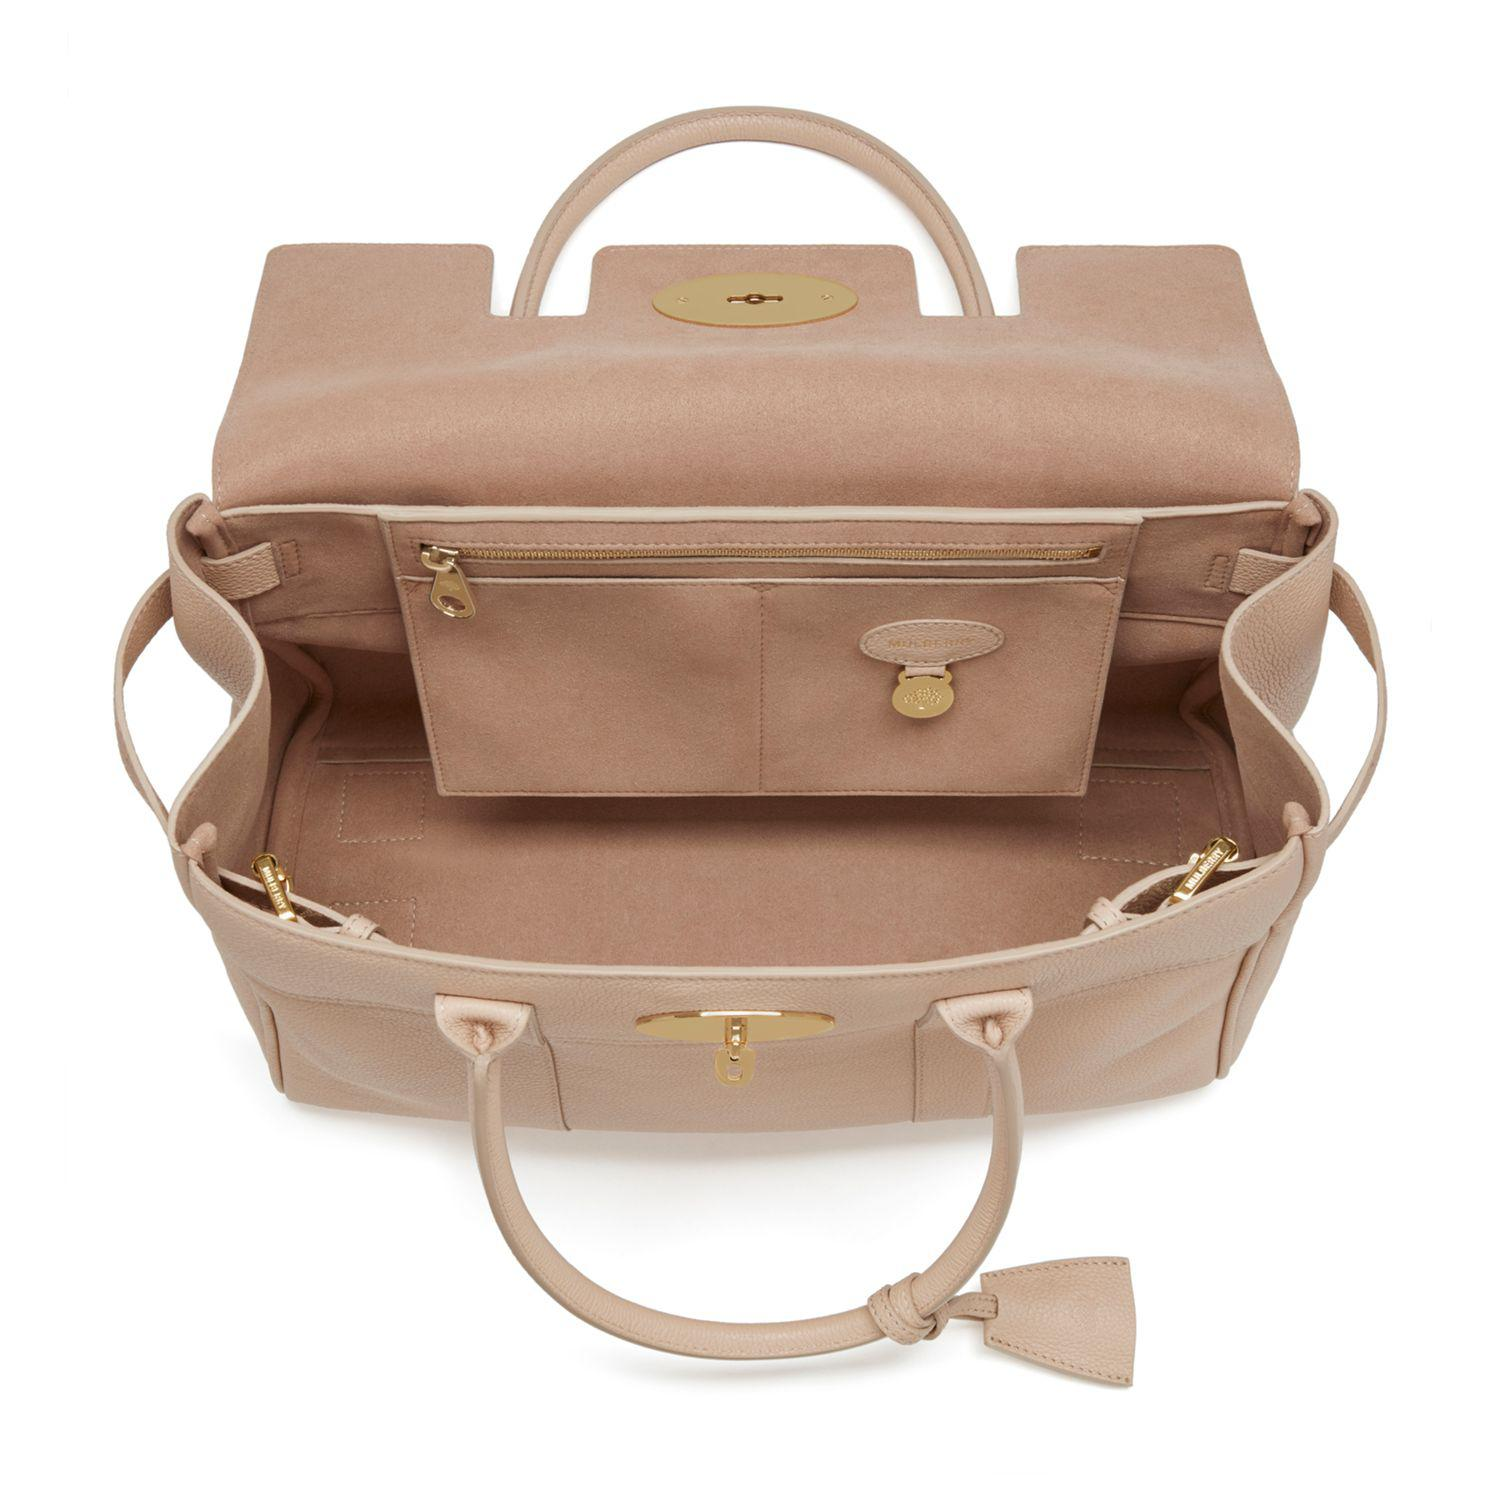 0708f8a363a8 John Lewis Mulberry Bayswater Small Classic Grain Leather Grab Bag ...